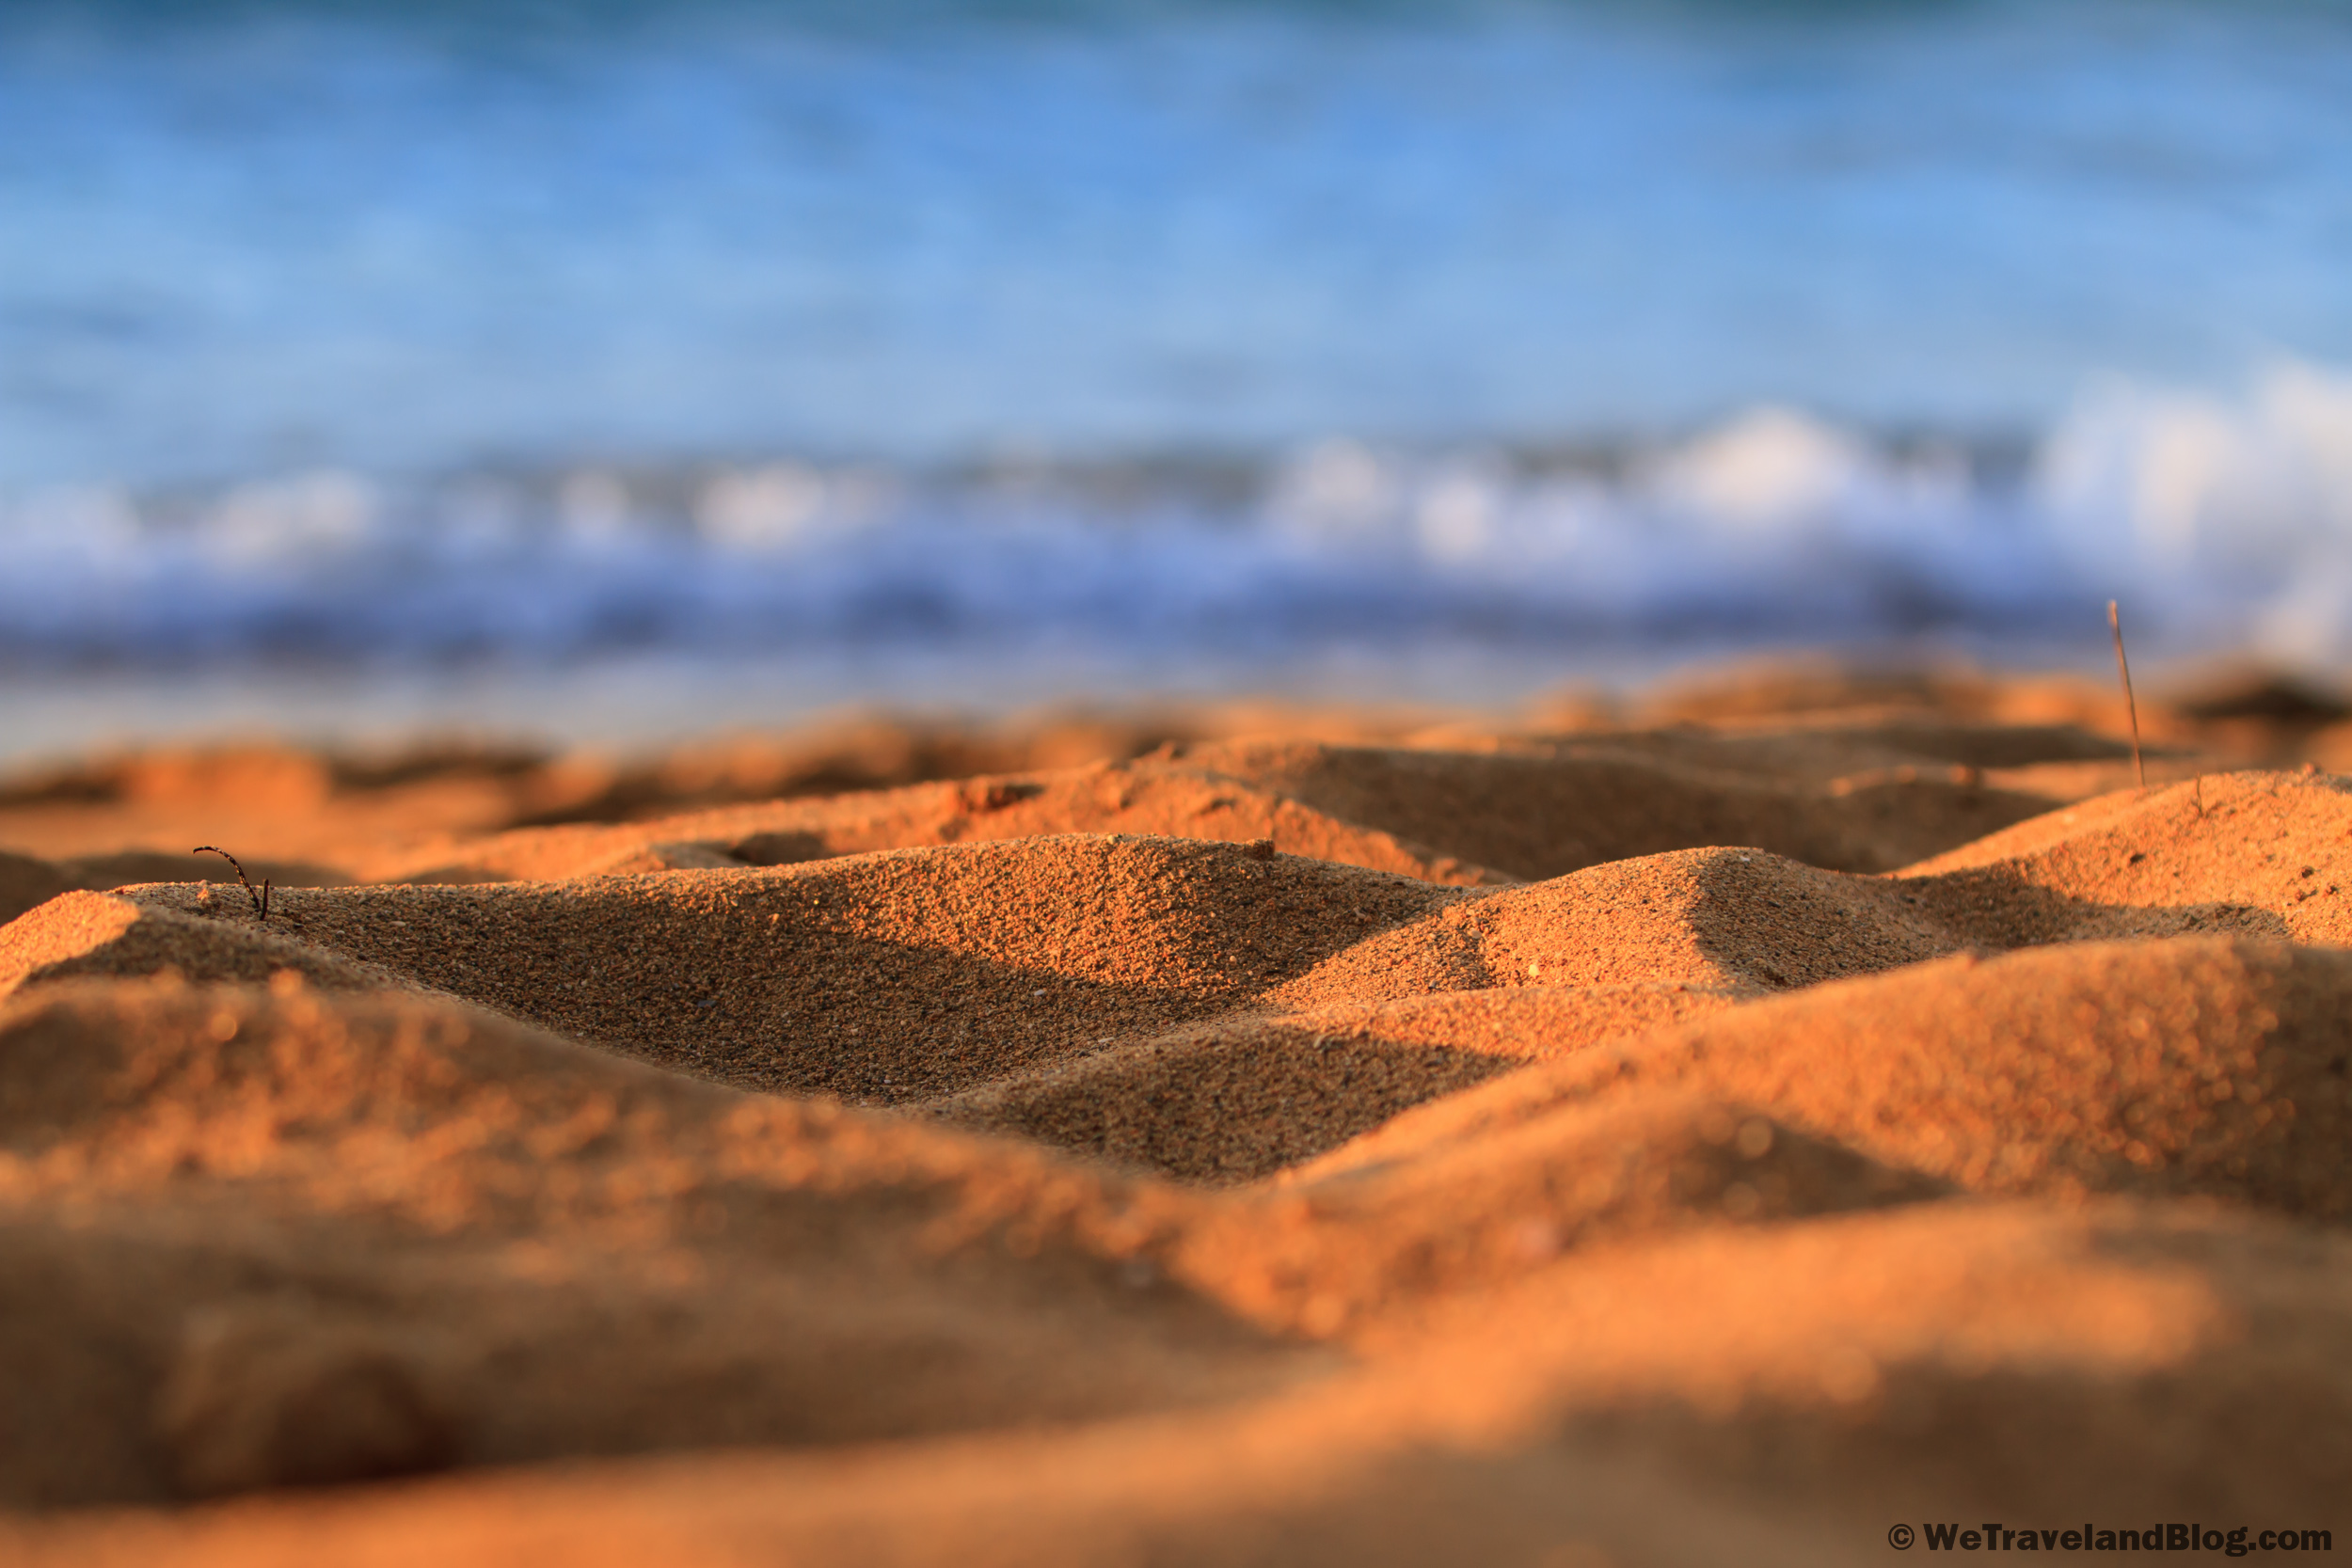 Wallpaper Wednesday December 4th Life Beach Travel Blog Sand Sandy